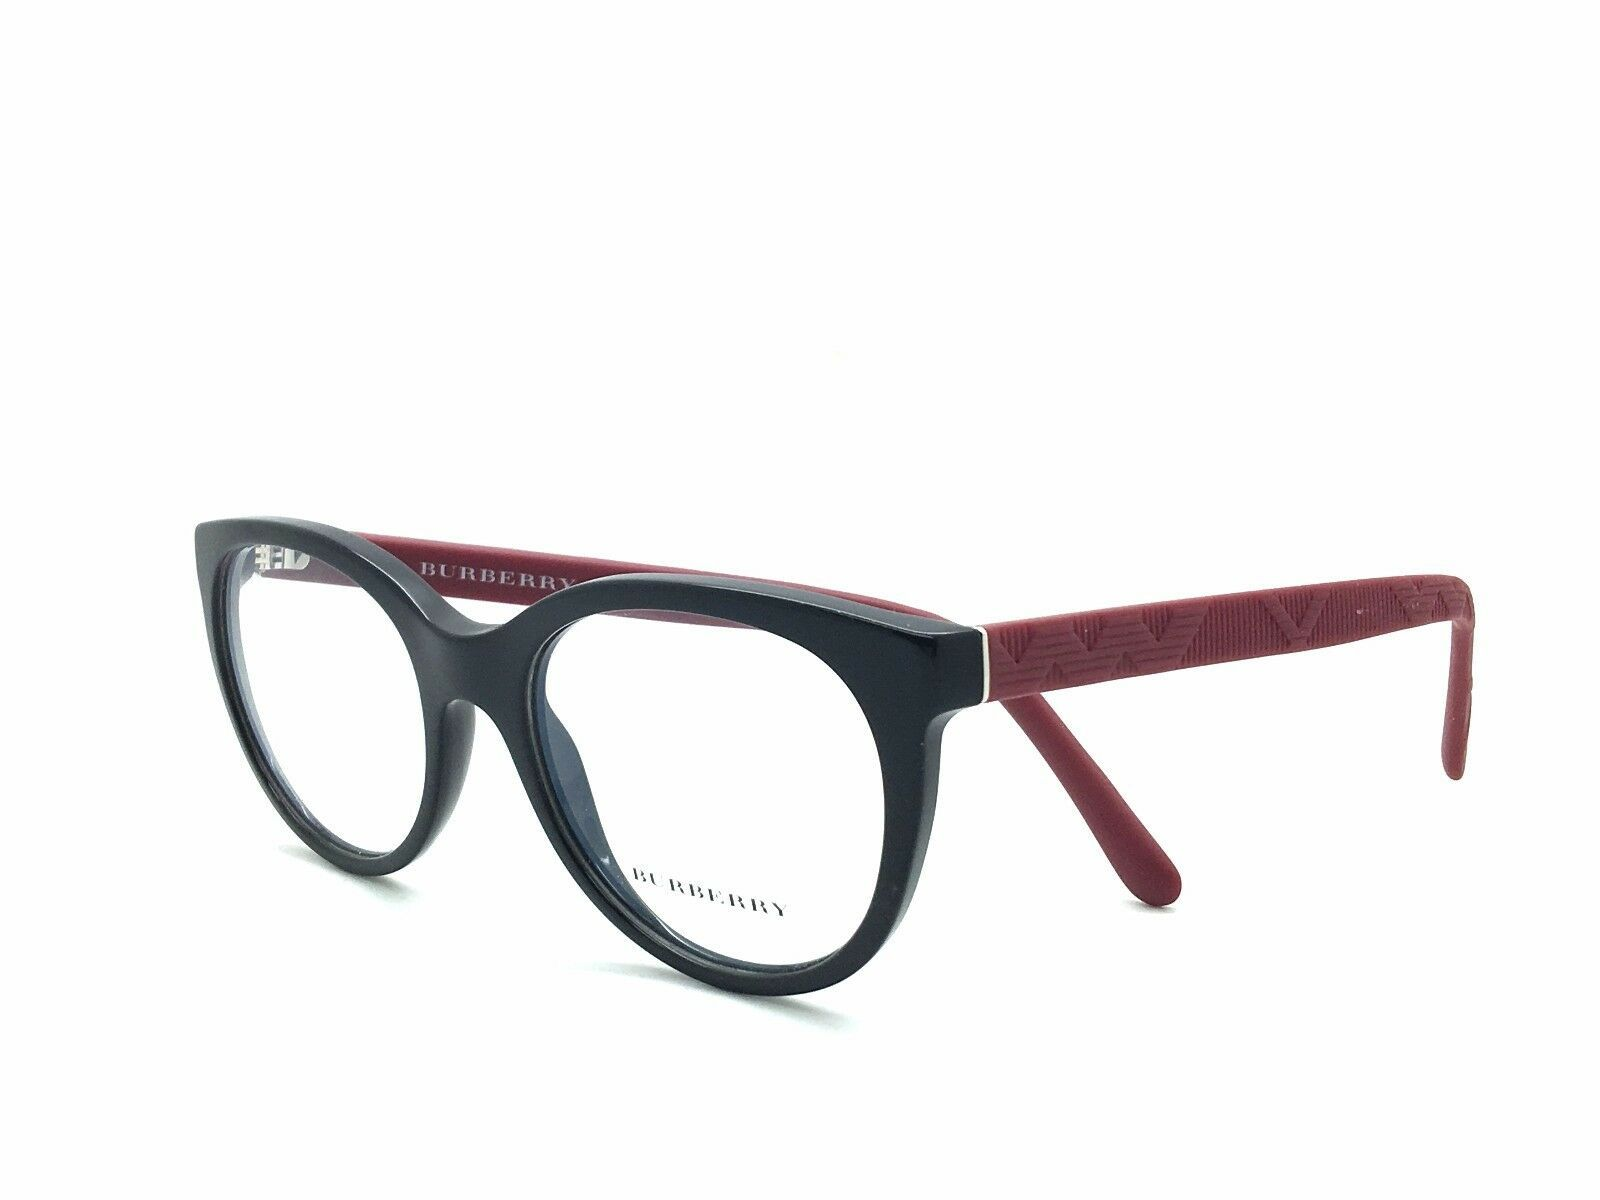 Primary image for Burberry BE B 2176 Eyeglasses Frames Black Matte Red 3498 Authentic 51mm